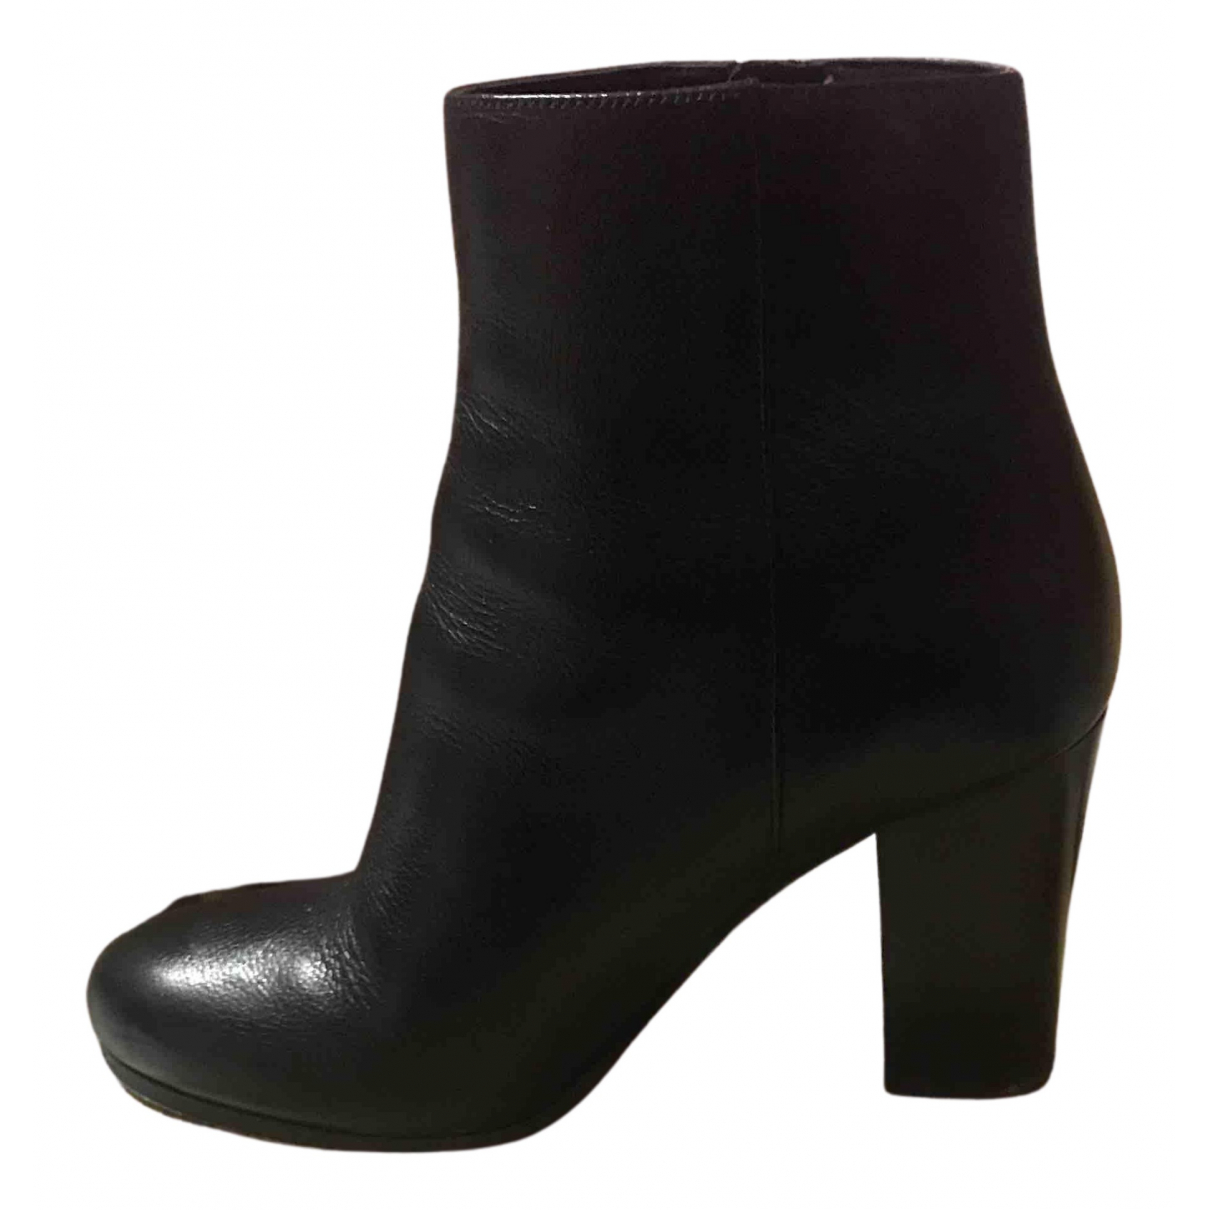 Michael Kors N Black Leather Boots for Women 37 IT